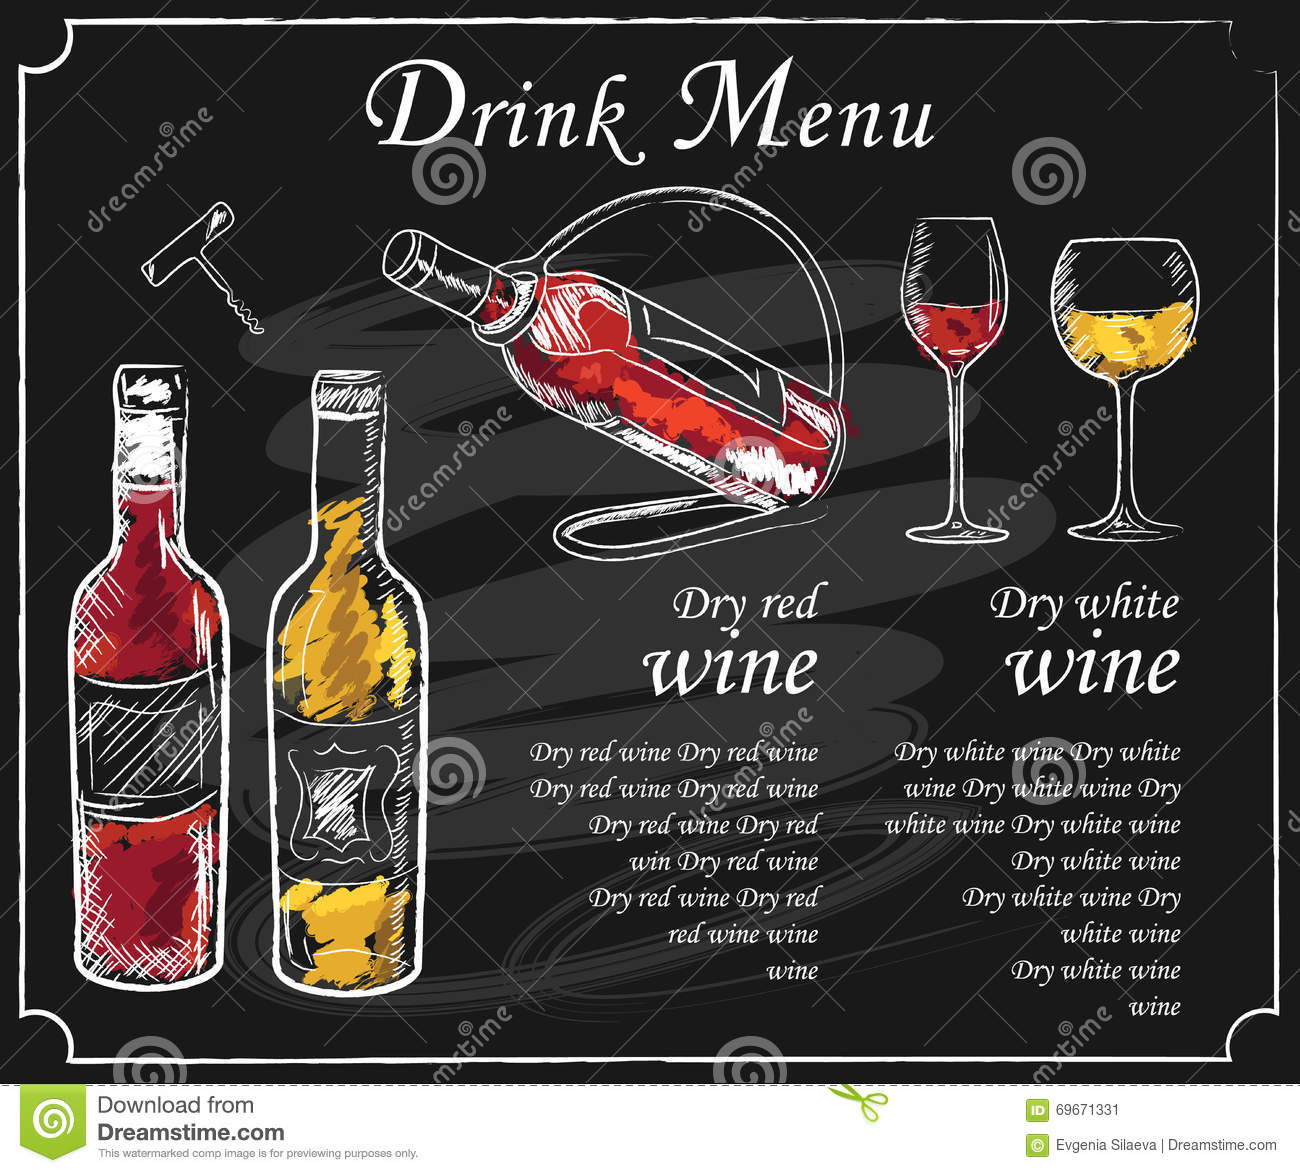 Drink Menu Stock Image